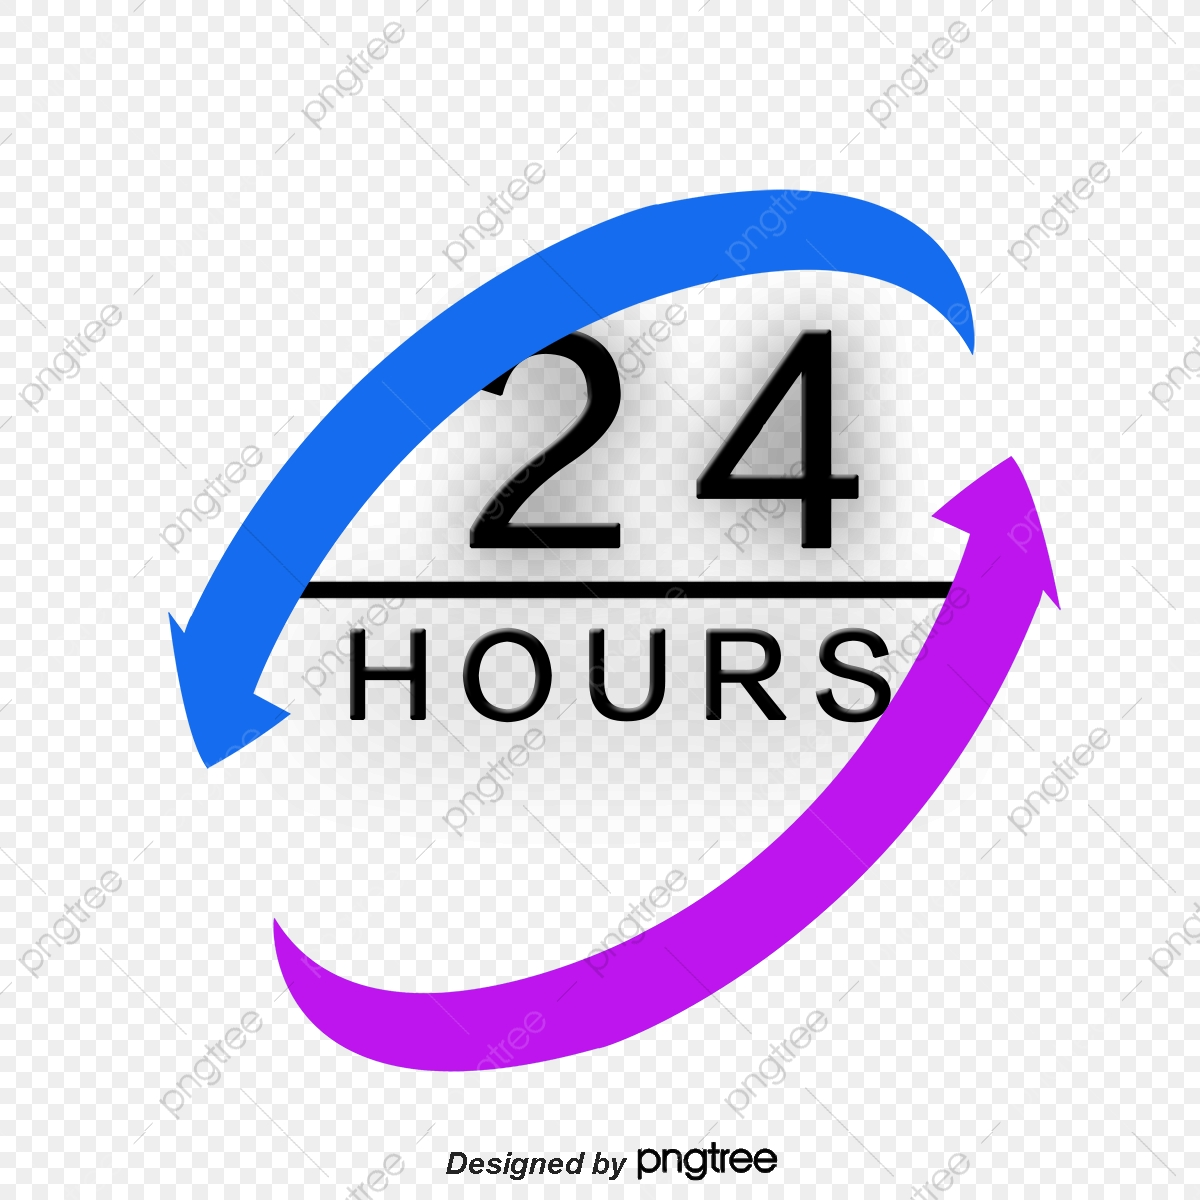 24 hours png vector psd and clipart with transparent background for free download pngtree https pngtree com freepng 24 hour service 2861759 html